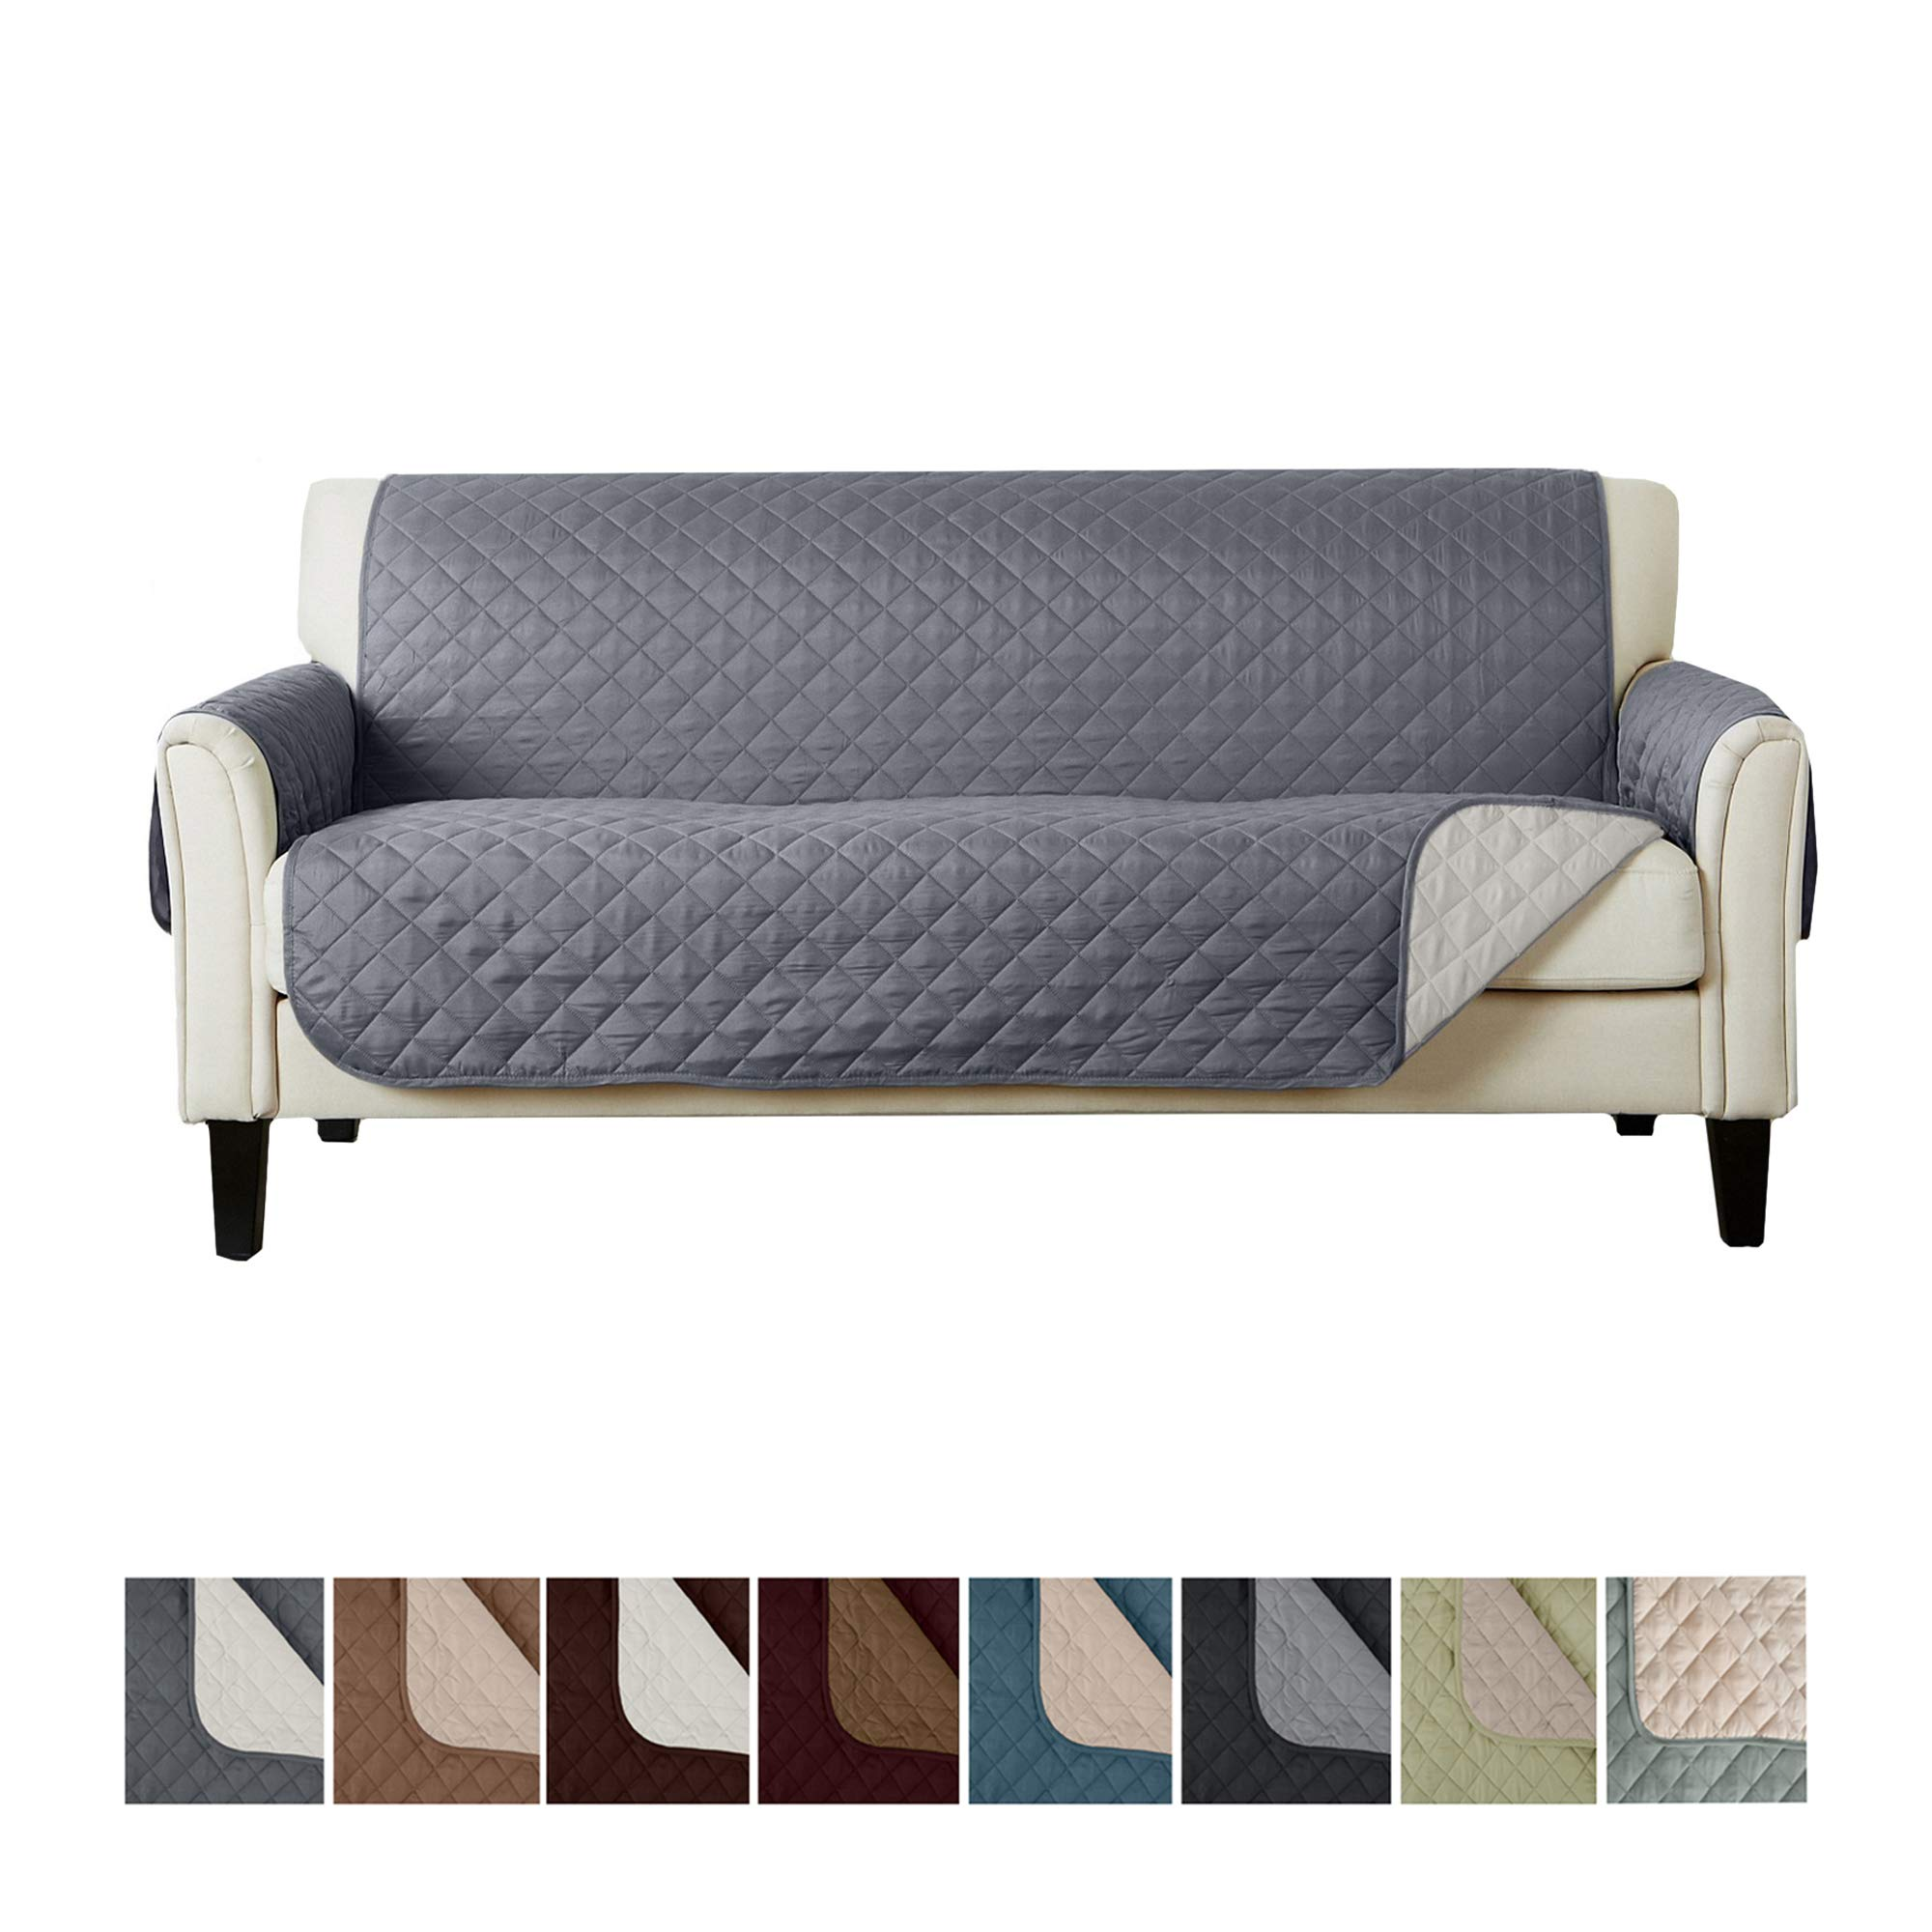 Home Fashion Designs Reversible Sofa Protector. Furniture